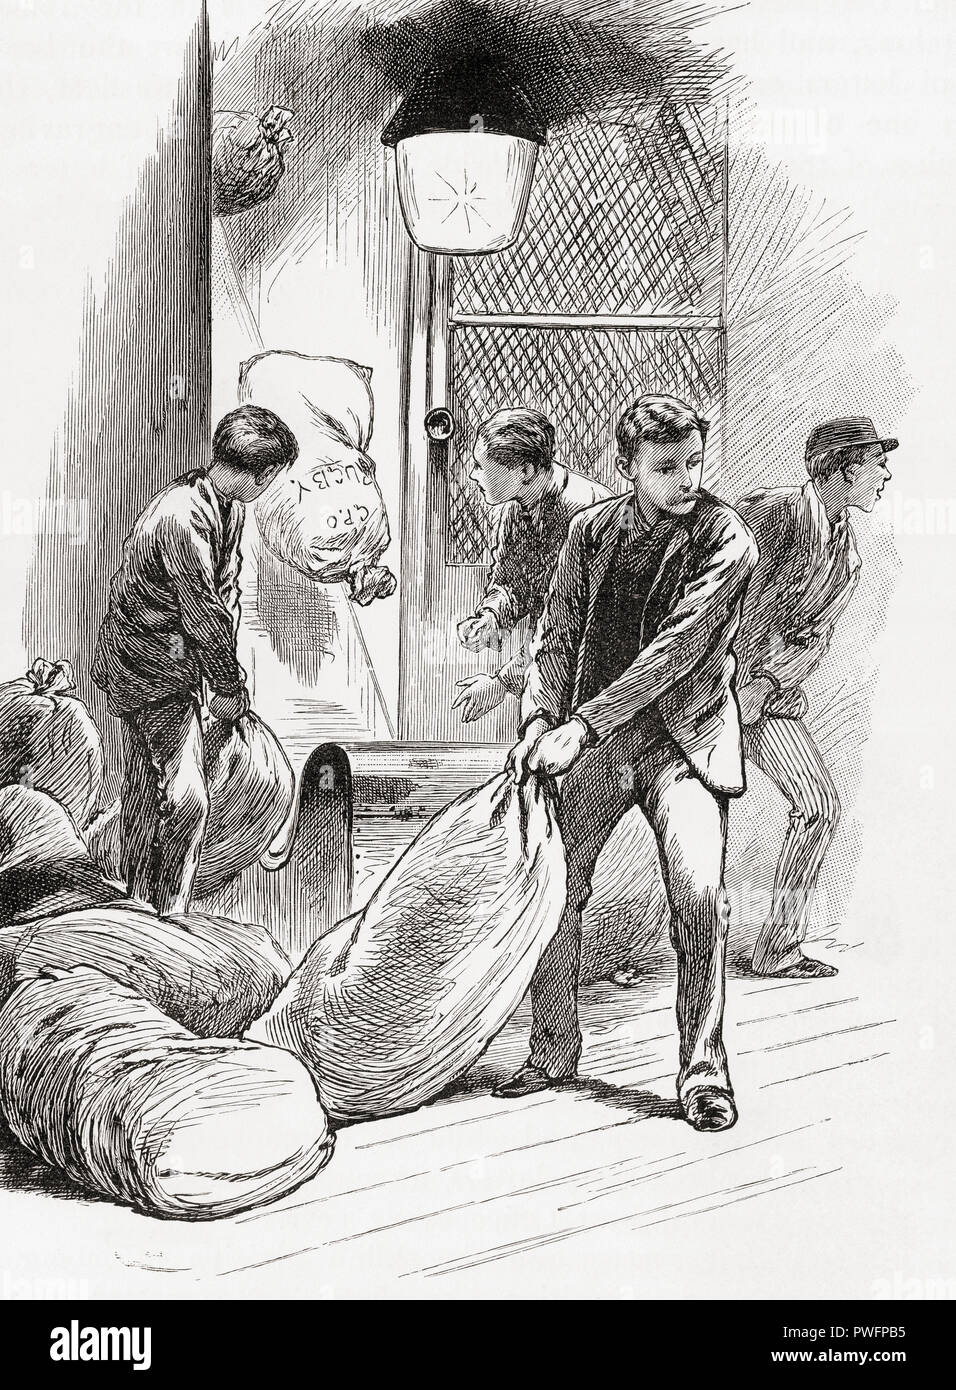 London, England in the 19th century.  The shoot in the general post office at 8 P.M., after the closing of the letter box at 6 P.M. sharp all letters have been sorted accordingly and placed in sacks, sent down the shoot to continue their onward journey to their destinations.  From London Pictures, published 1890. - Stock Image